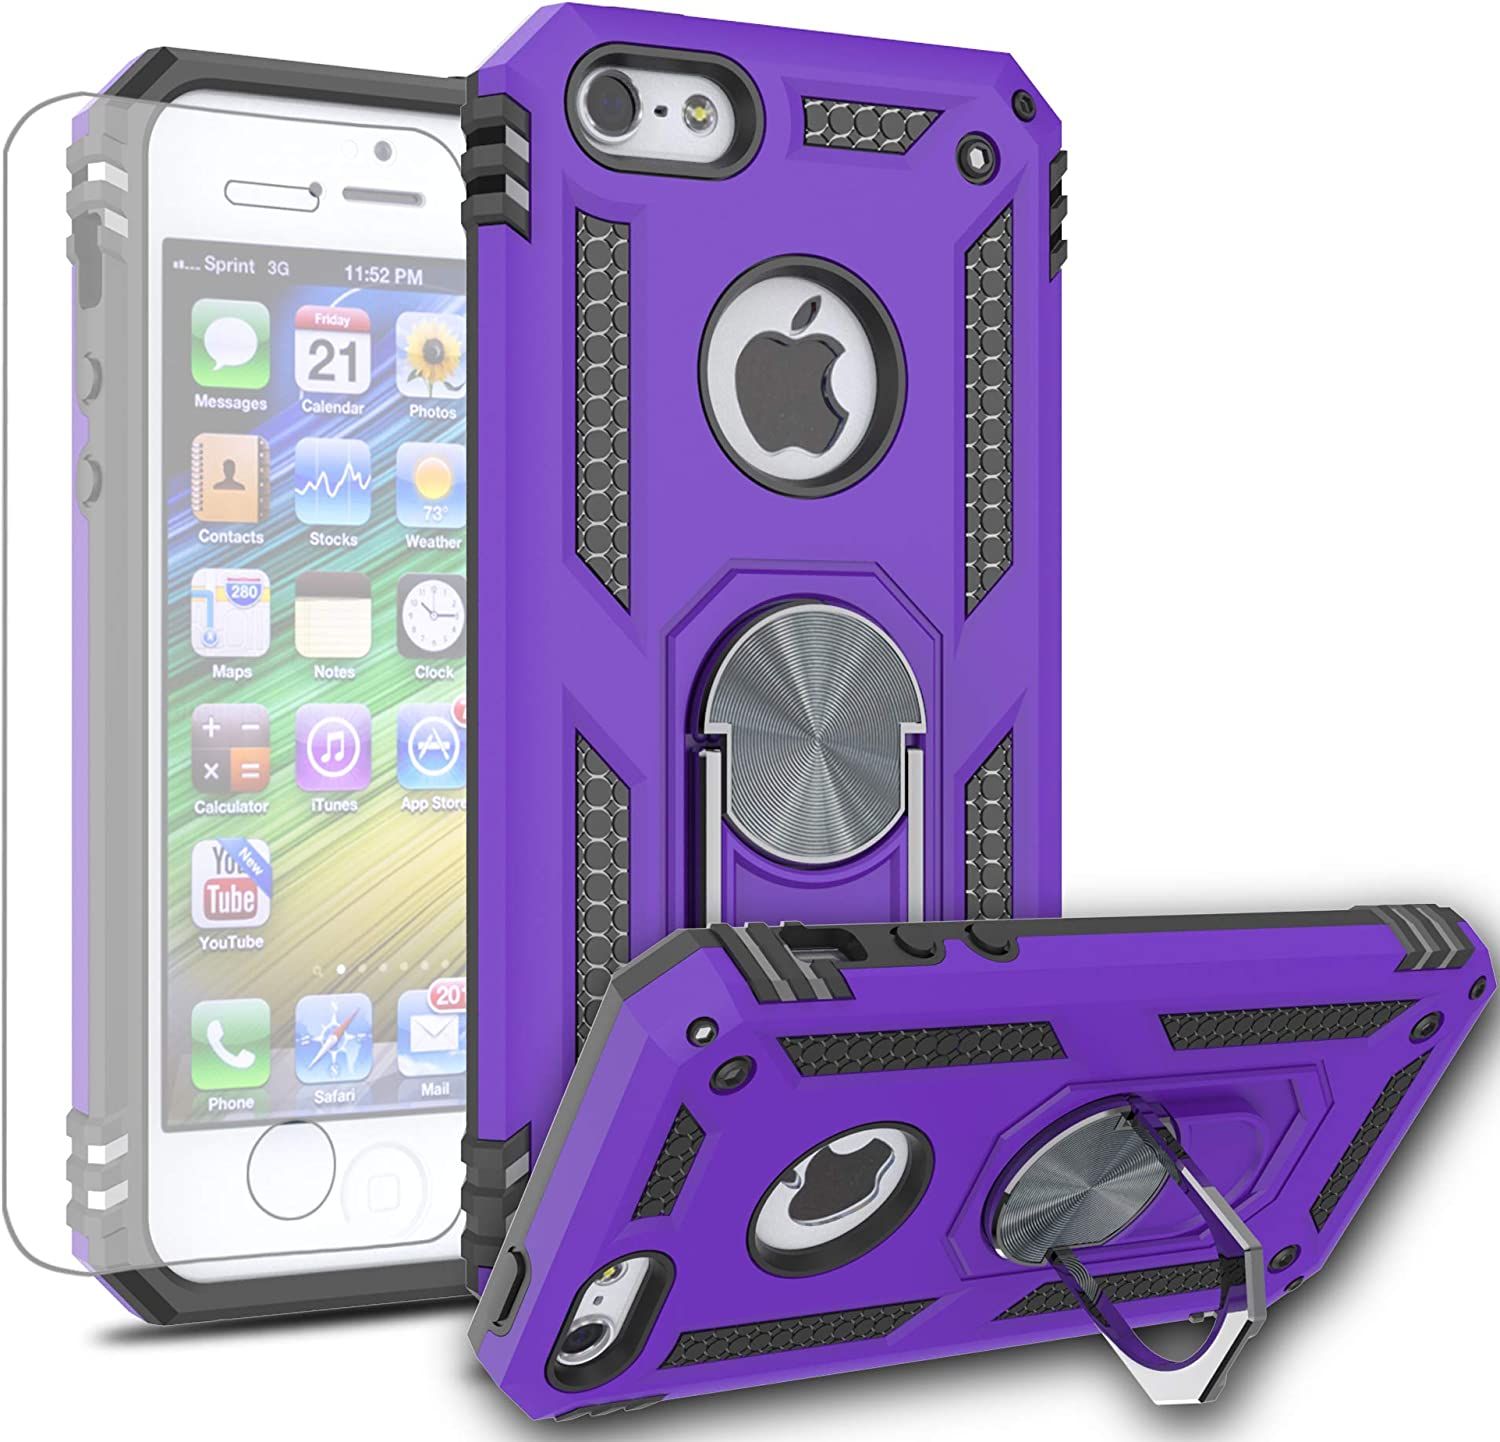 AYMECL iPhone 5 Case,iPhone 5S/iPhone SE Case with HD Screen Protector,[Military Grade] 360 Degree Magnetic Support Metal Ring Armor Shockproof Cover for Apple iPhone SE/iPhone 5S/iPhone 5-ST Purple